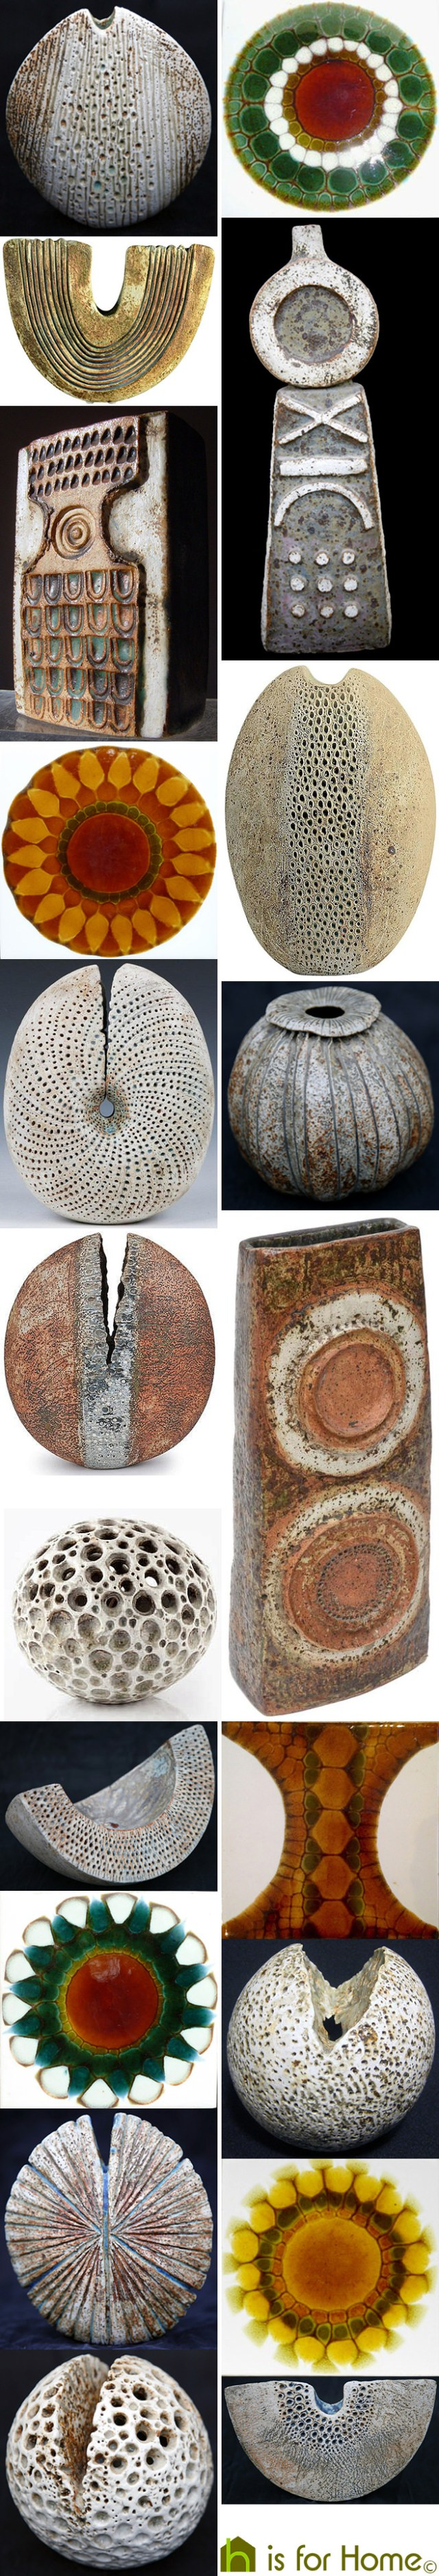 Mosaic of Alan Wallwork studio pottery | H is for Home